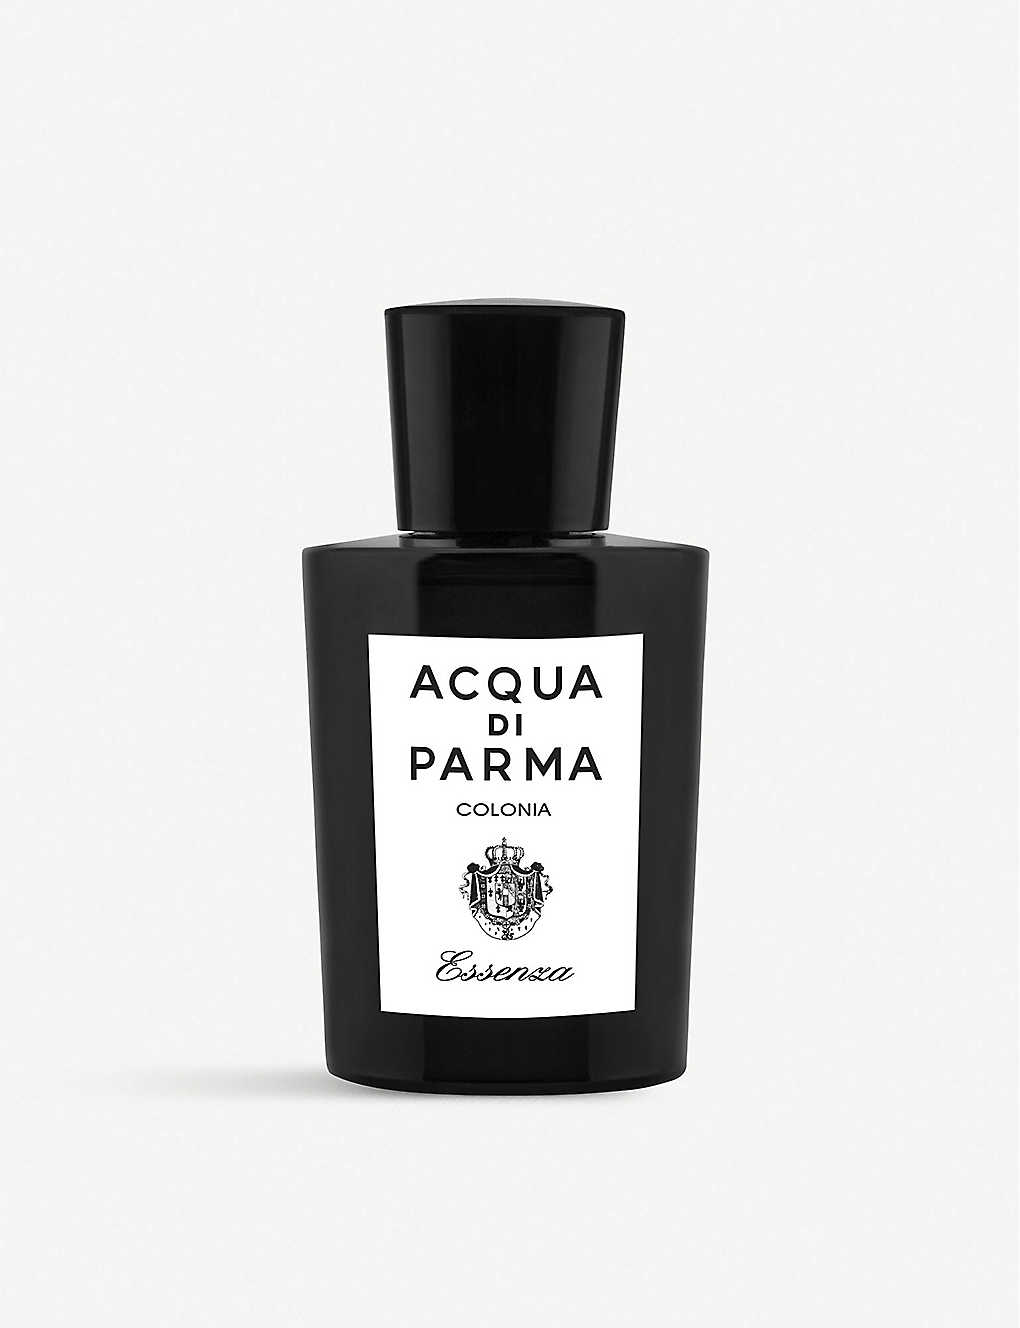 ACQUA DI PARMA: Colonia Essenza eau de cologne 50ml